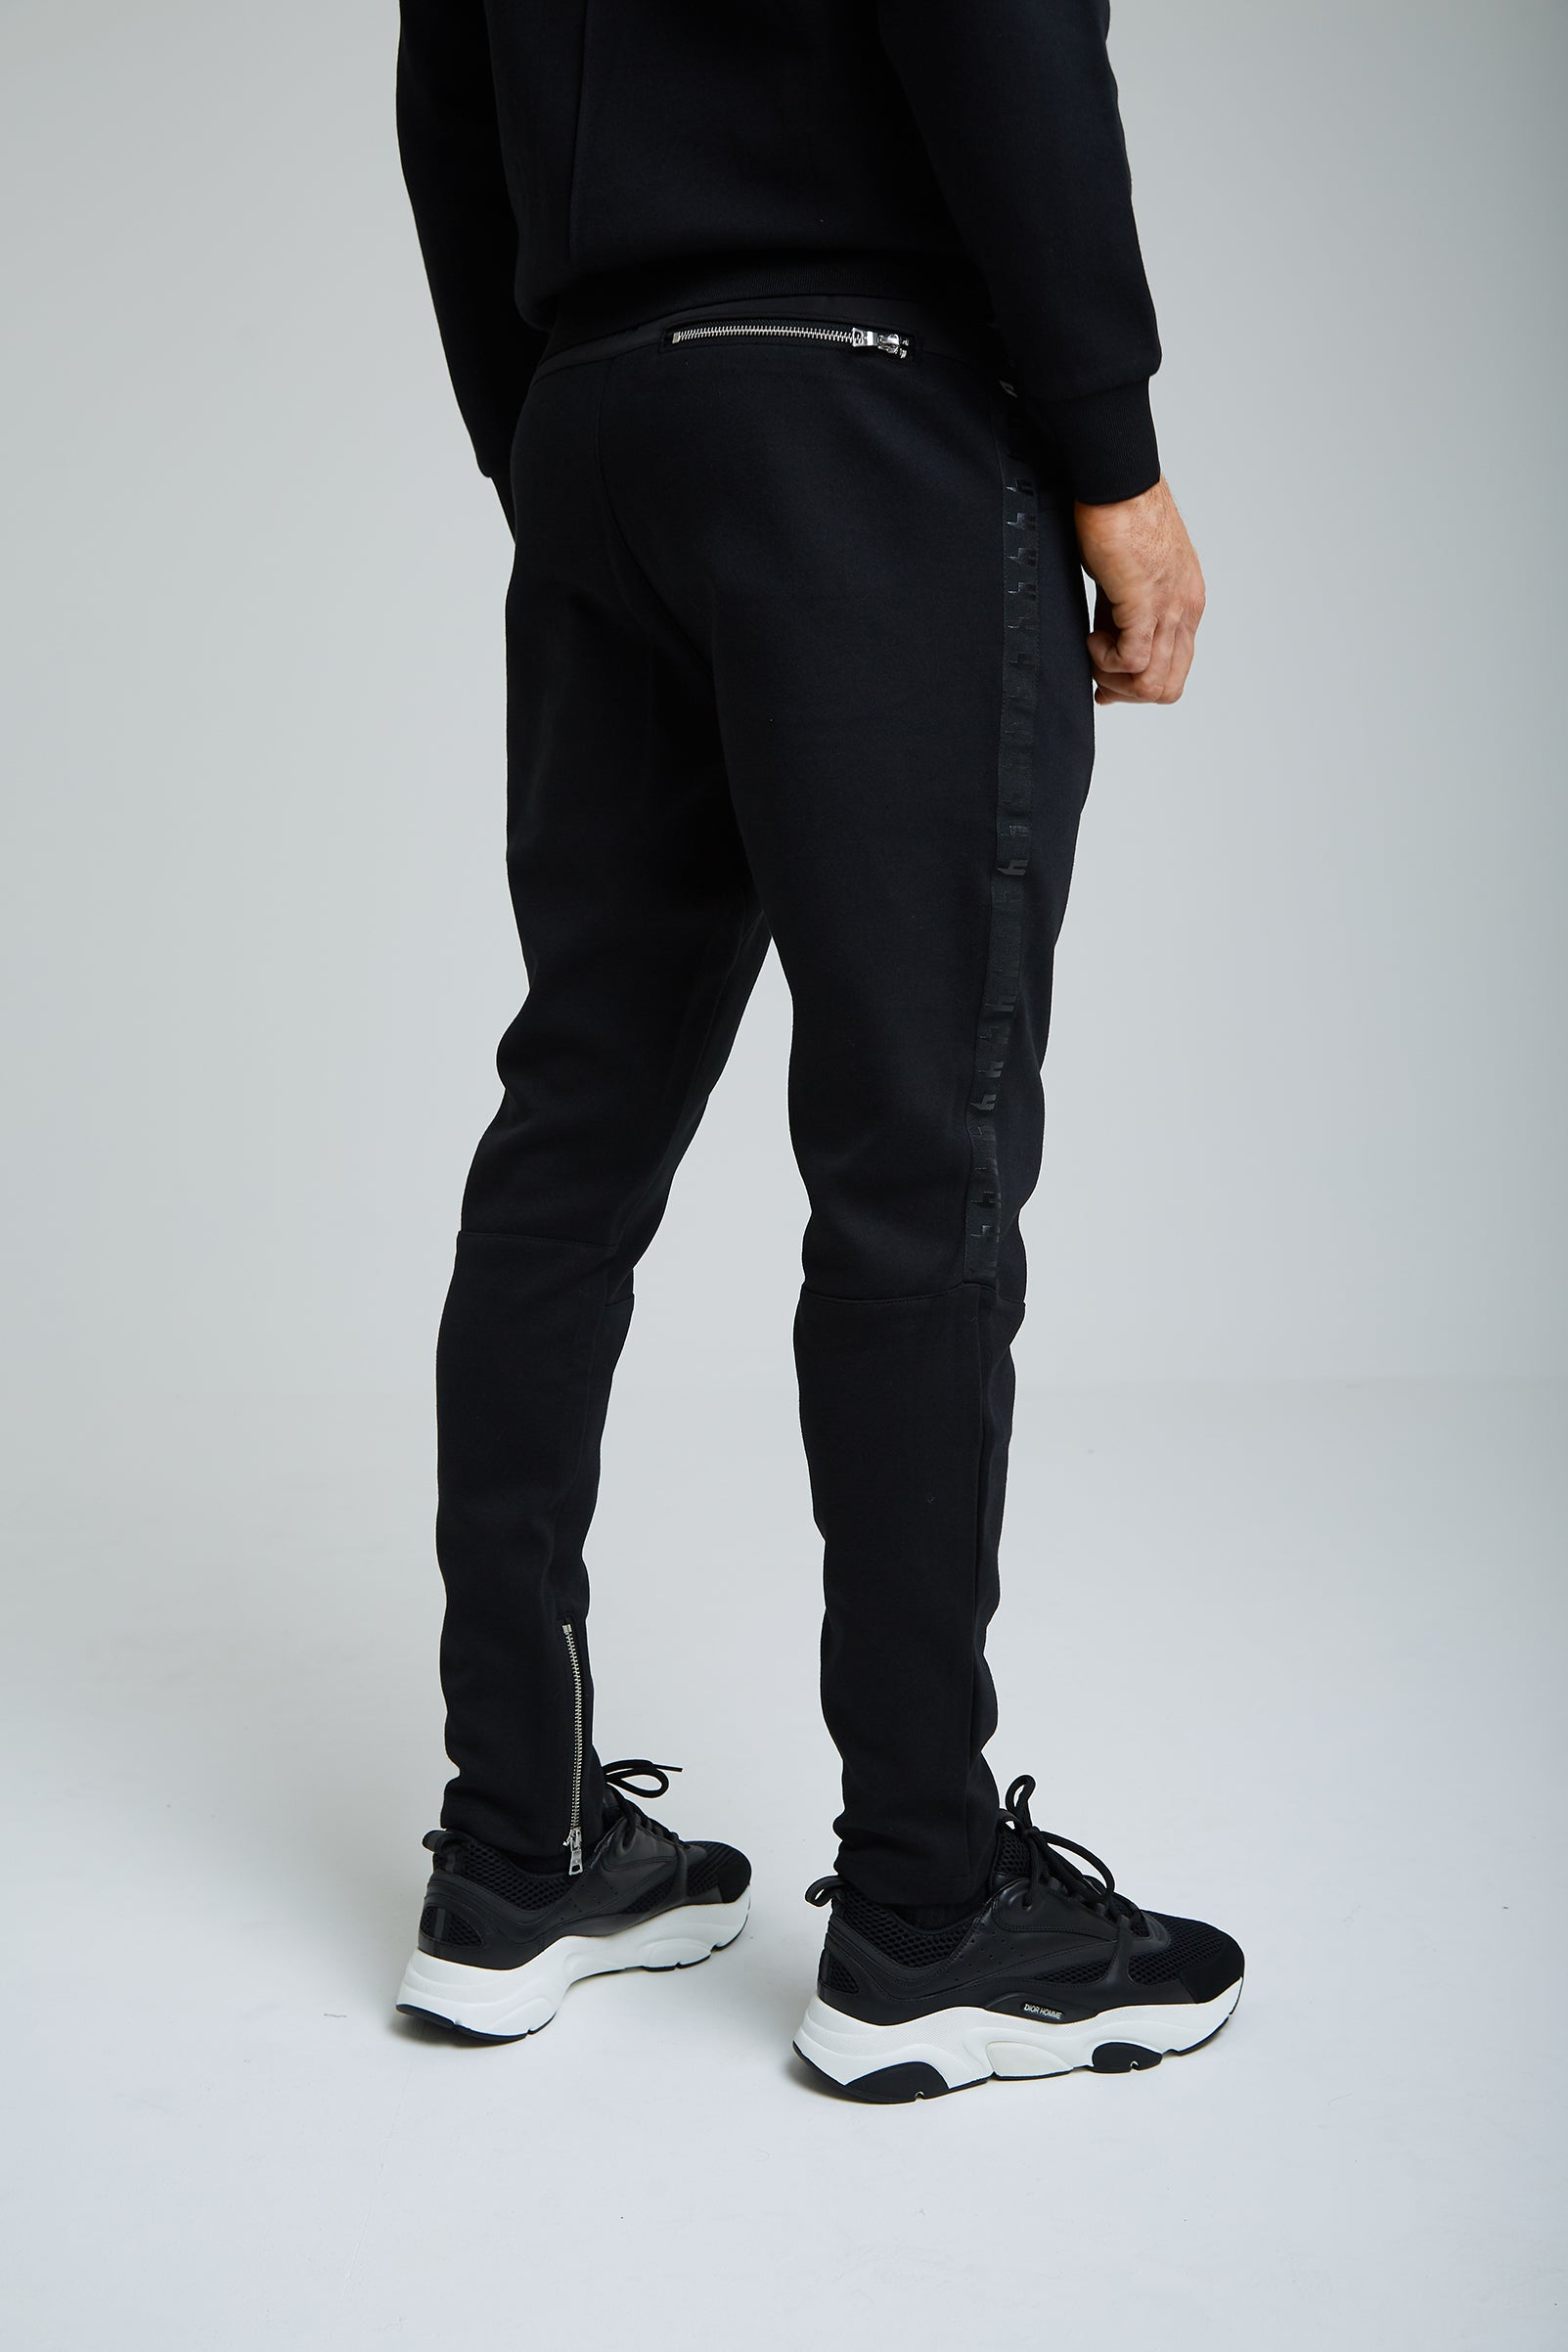 YELIR WORLD SIDE STRIPE JOGGER BLACK/BLACK